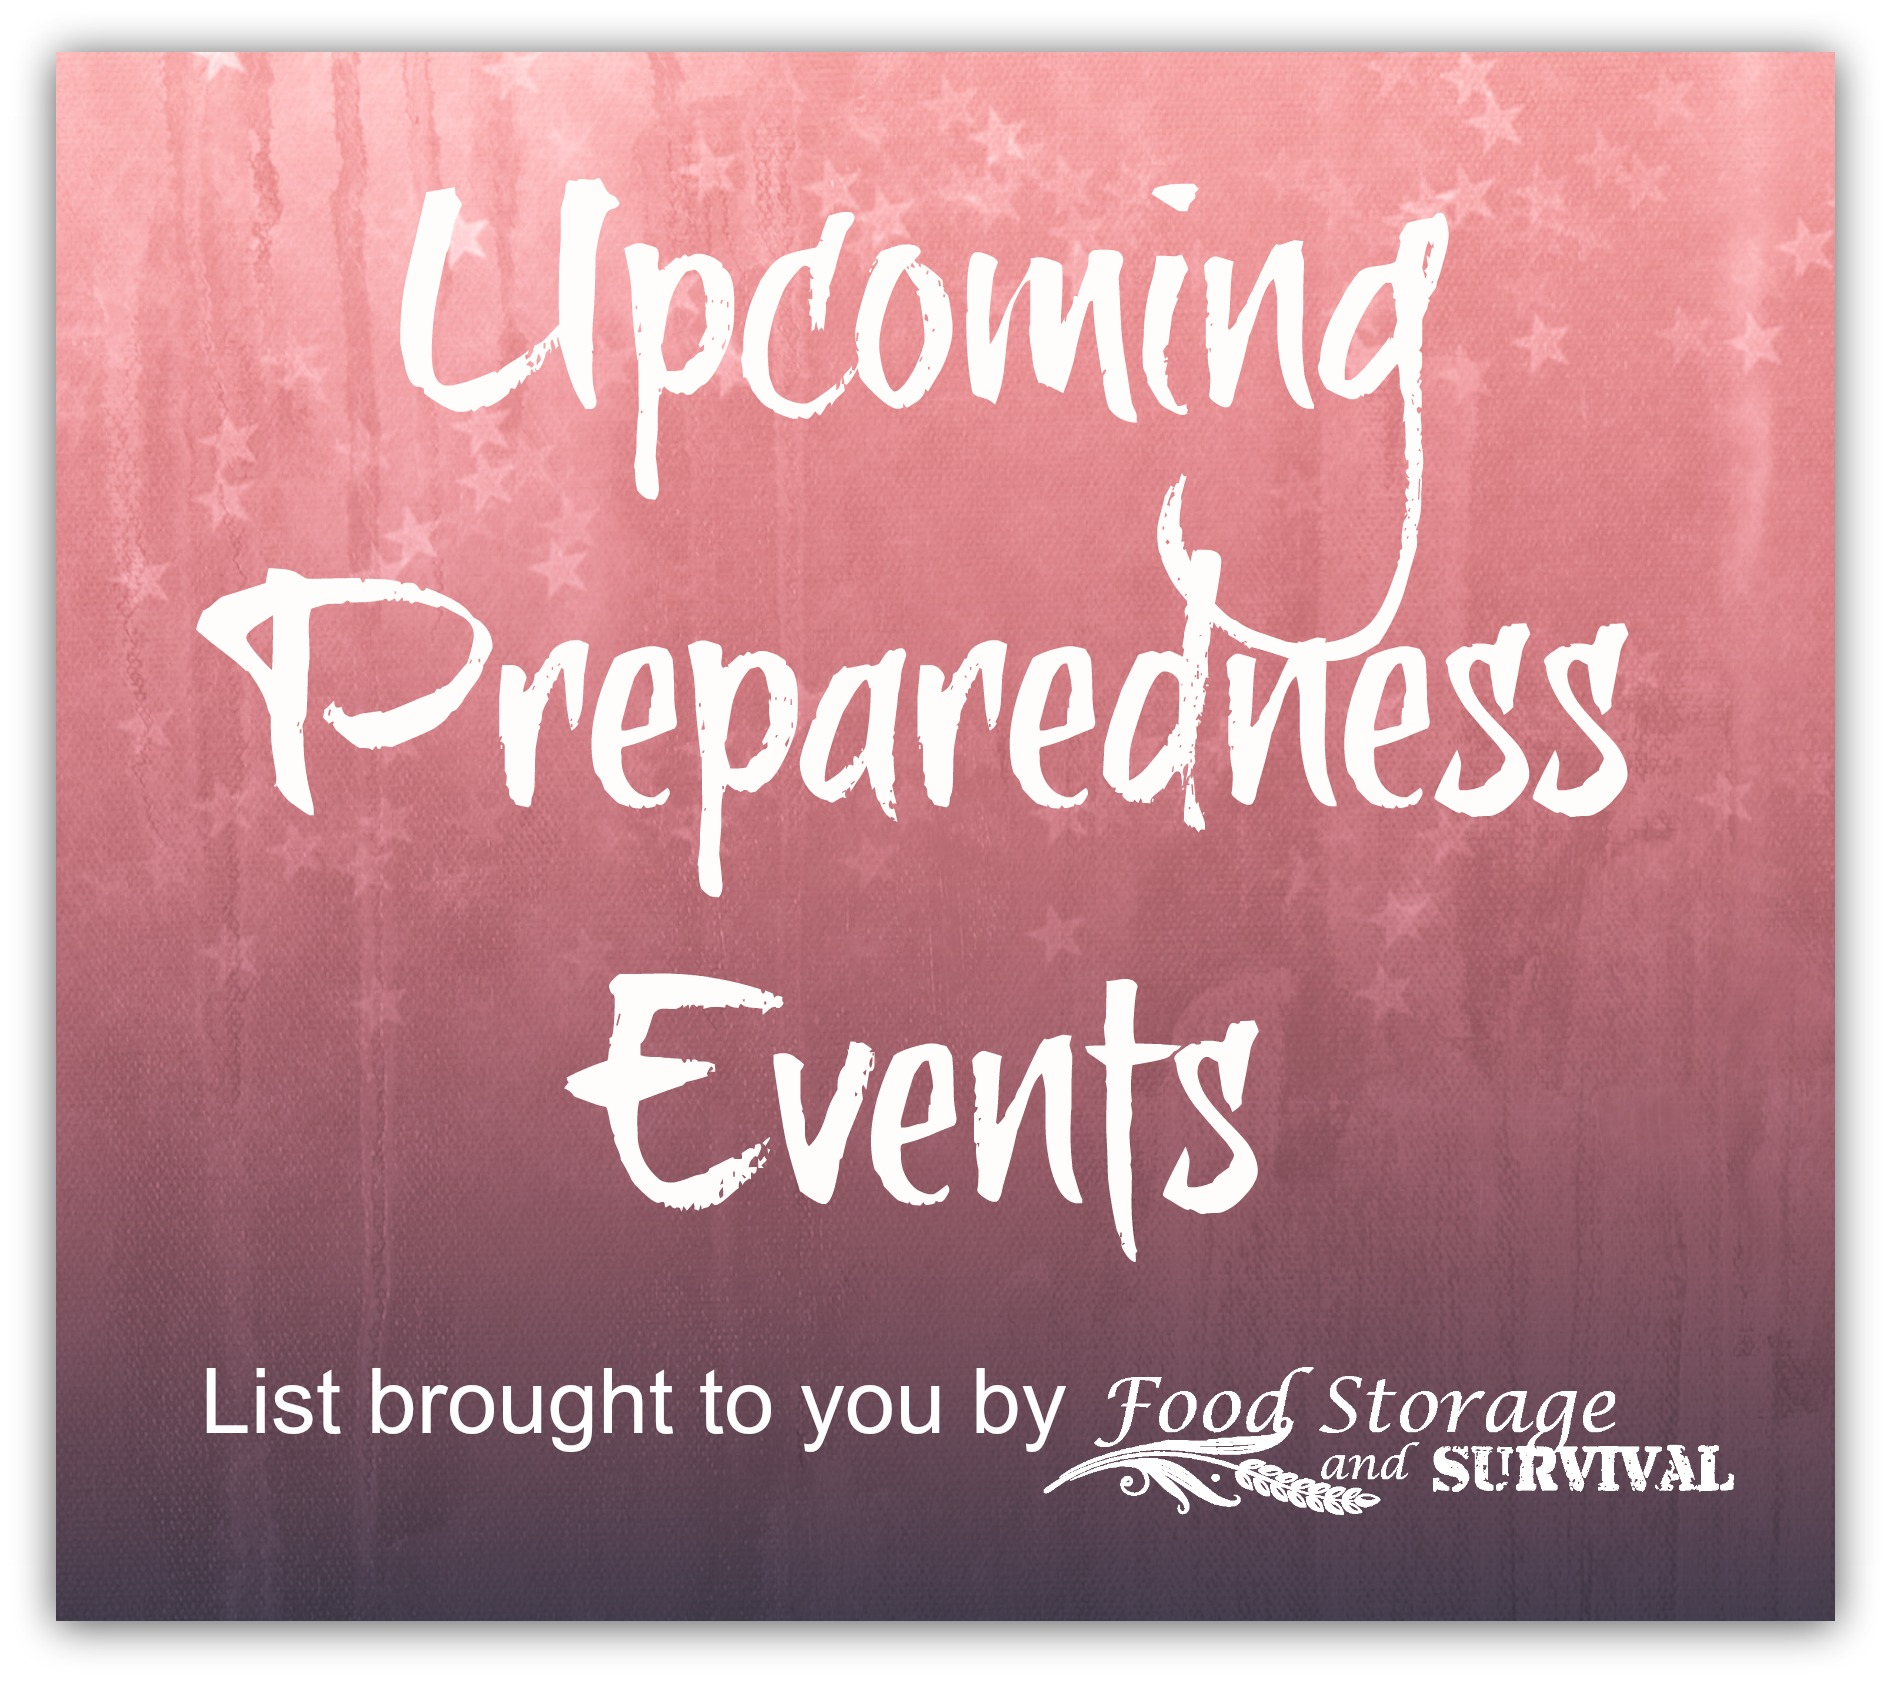 Up to date list of upcoming preparedness survival homesteading self reliance events and  sc 1 st  Food Storage and Survival & Preparedness Events